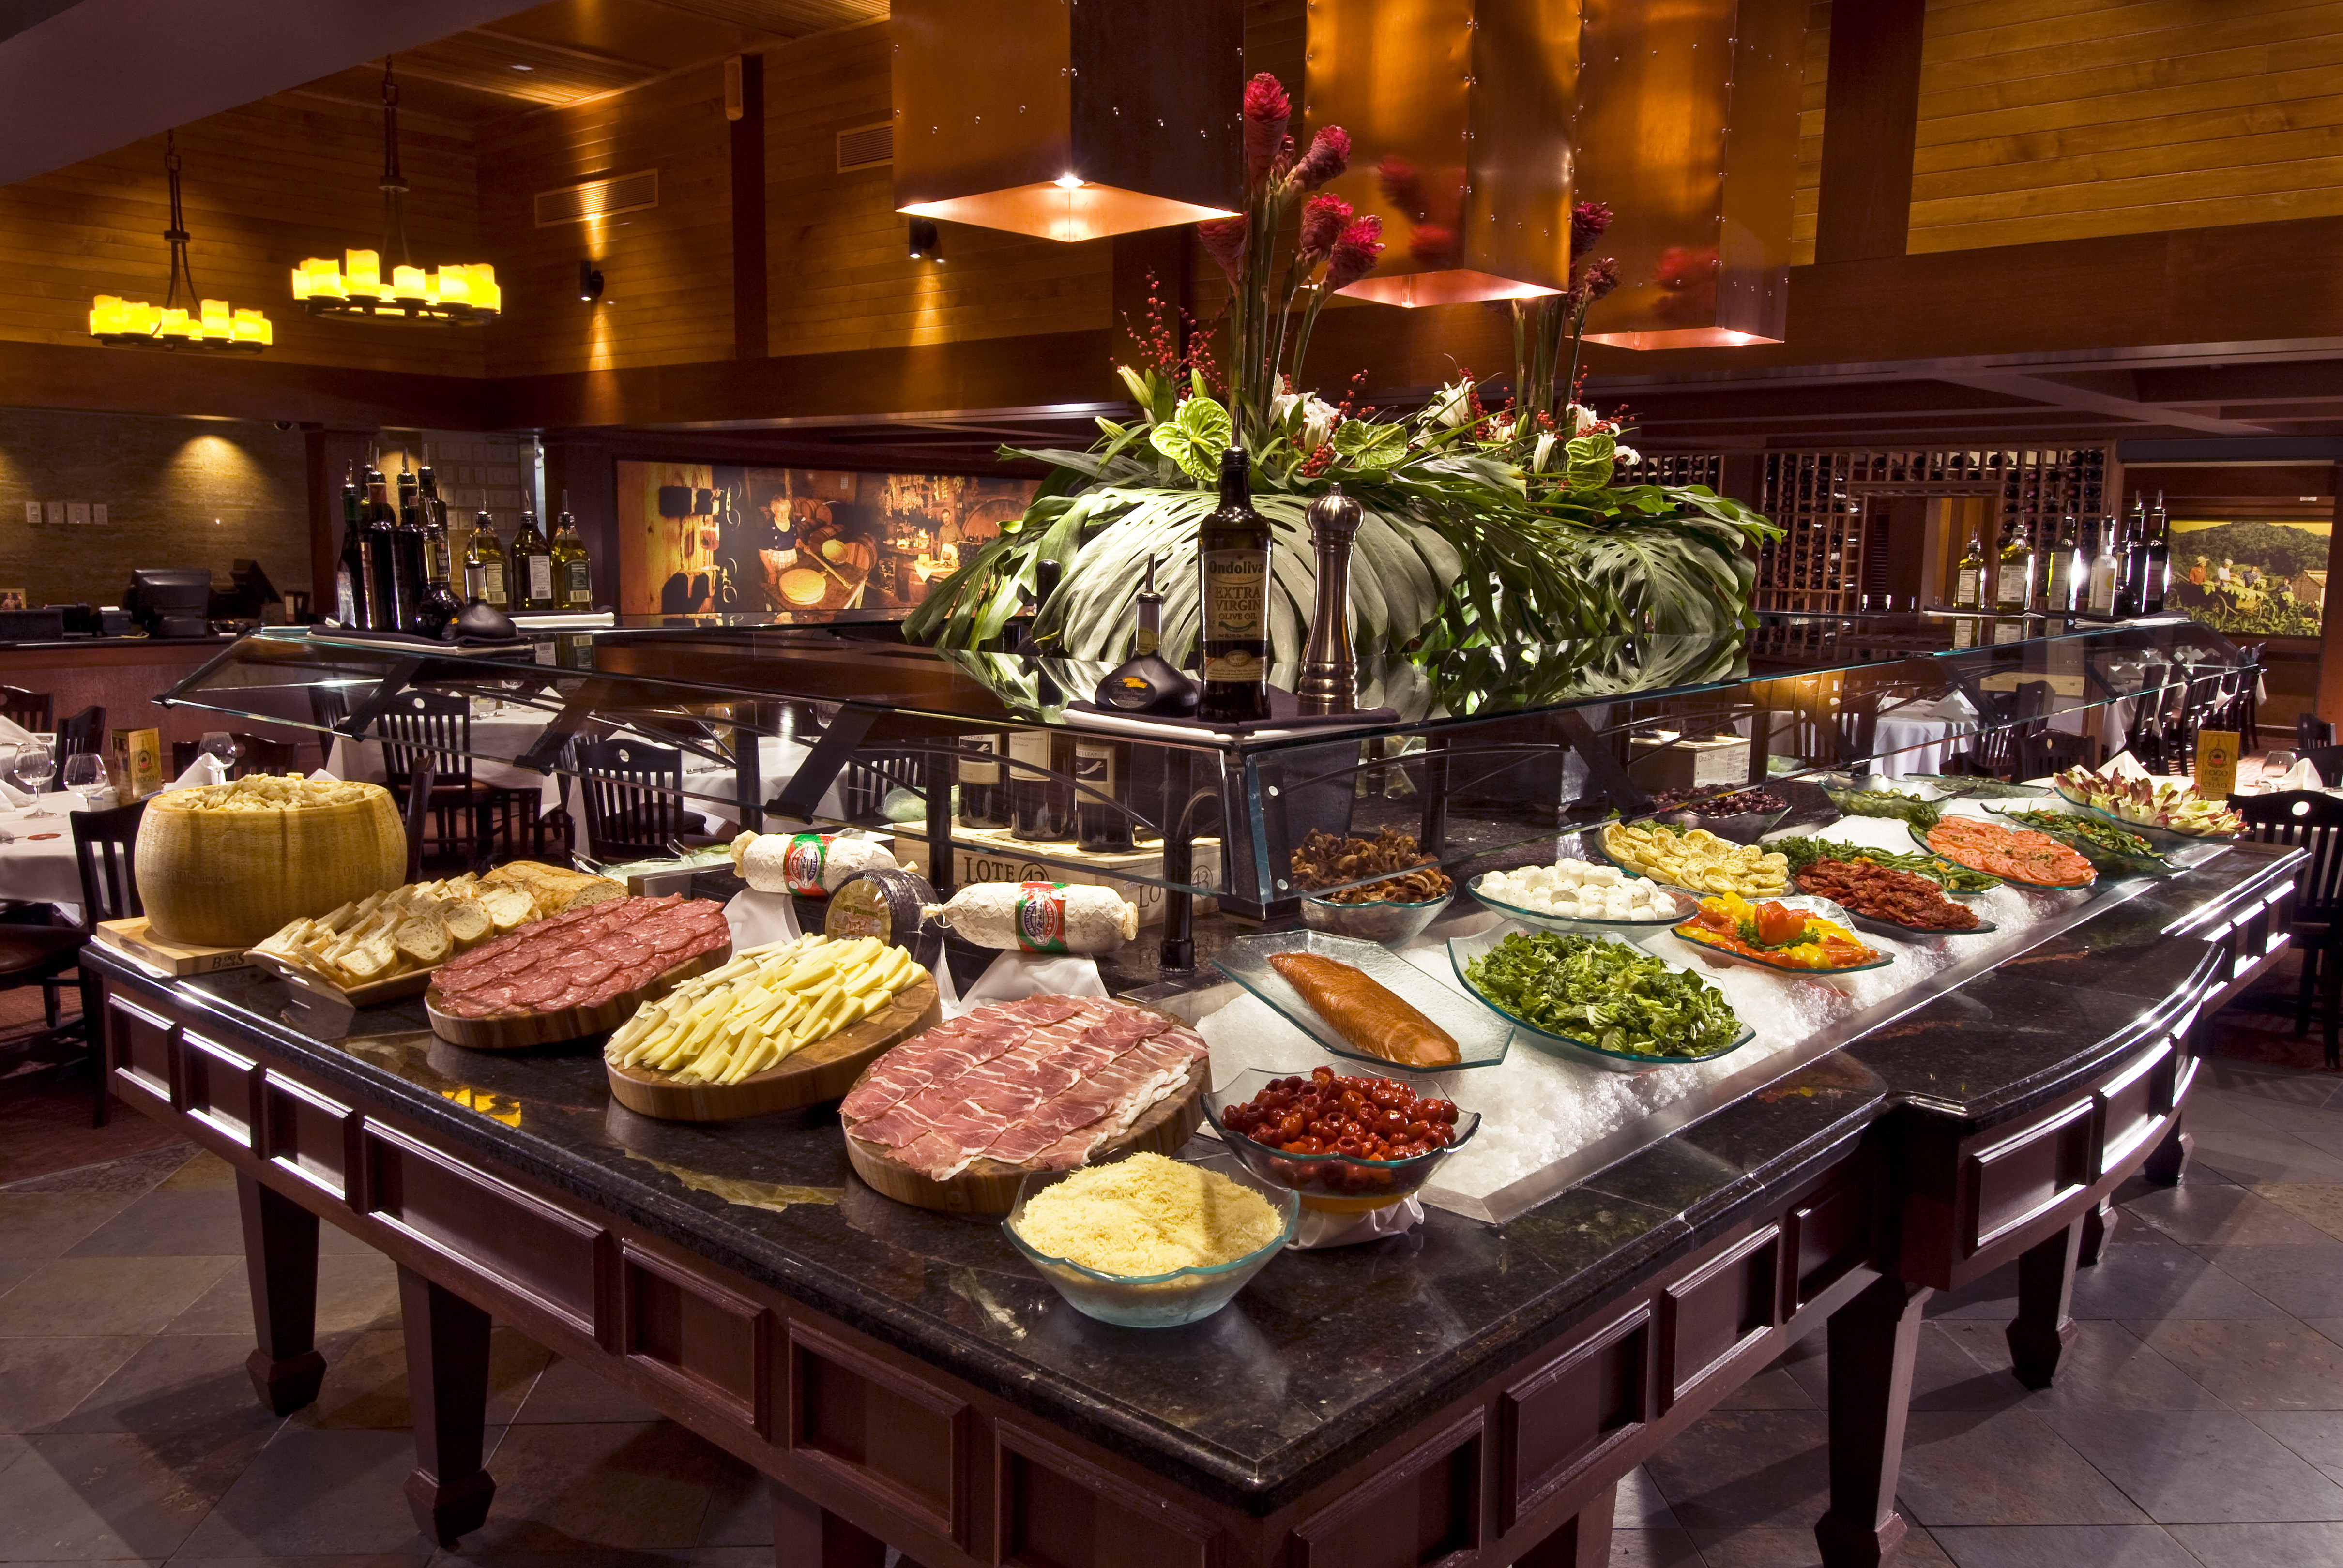 Read the Restaurant similar to FOGO DE CHAO (not a Brazilian Steakhouse) discussion from the Chowhound Restaurants, Chicago food community. Join the discussion today.